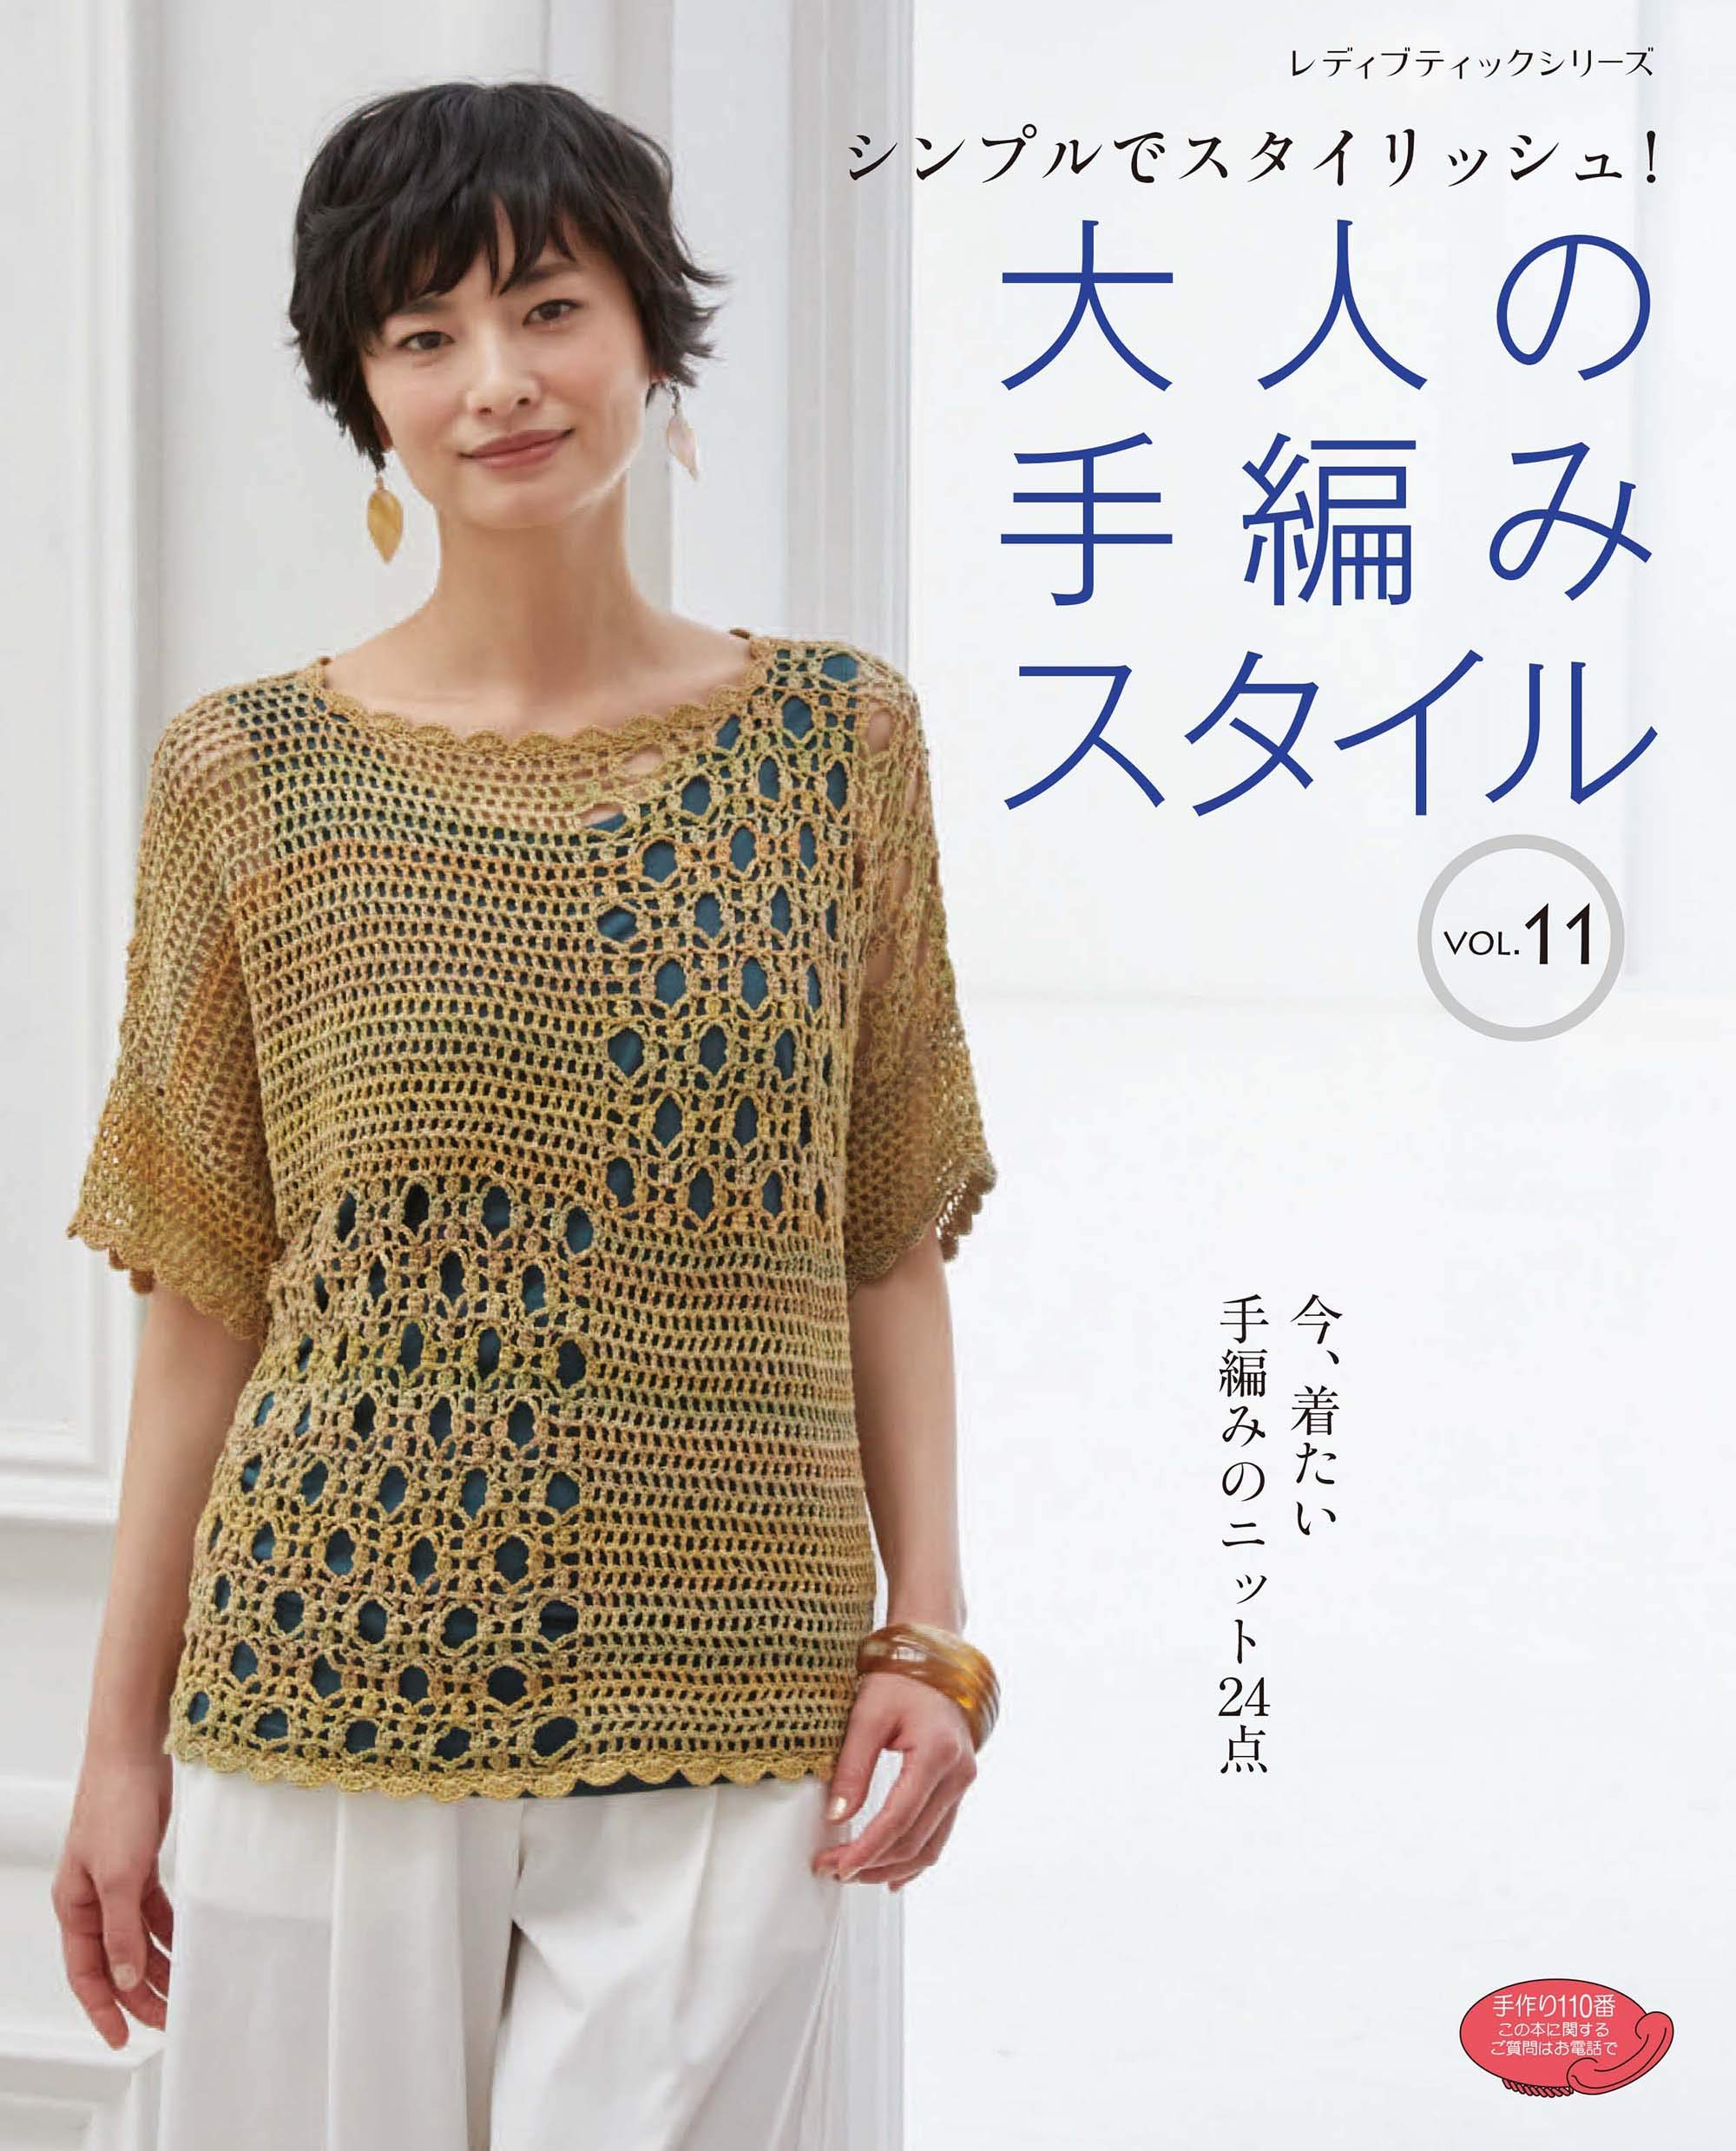 Adult Hand-knitting Style VOL.11